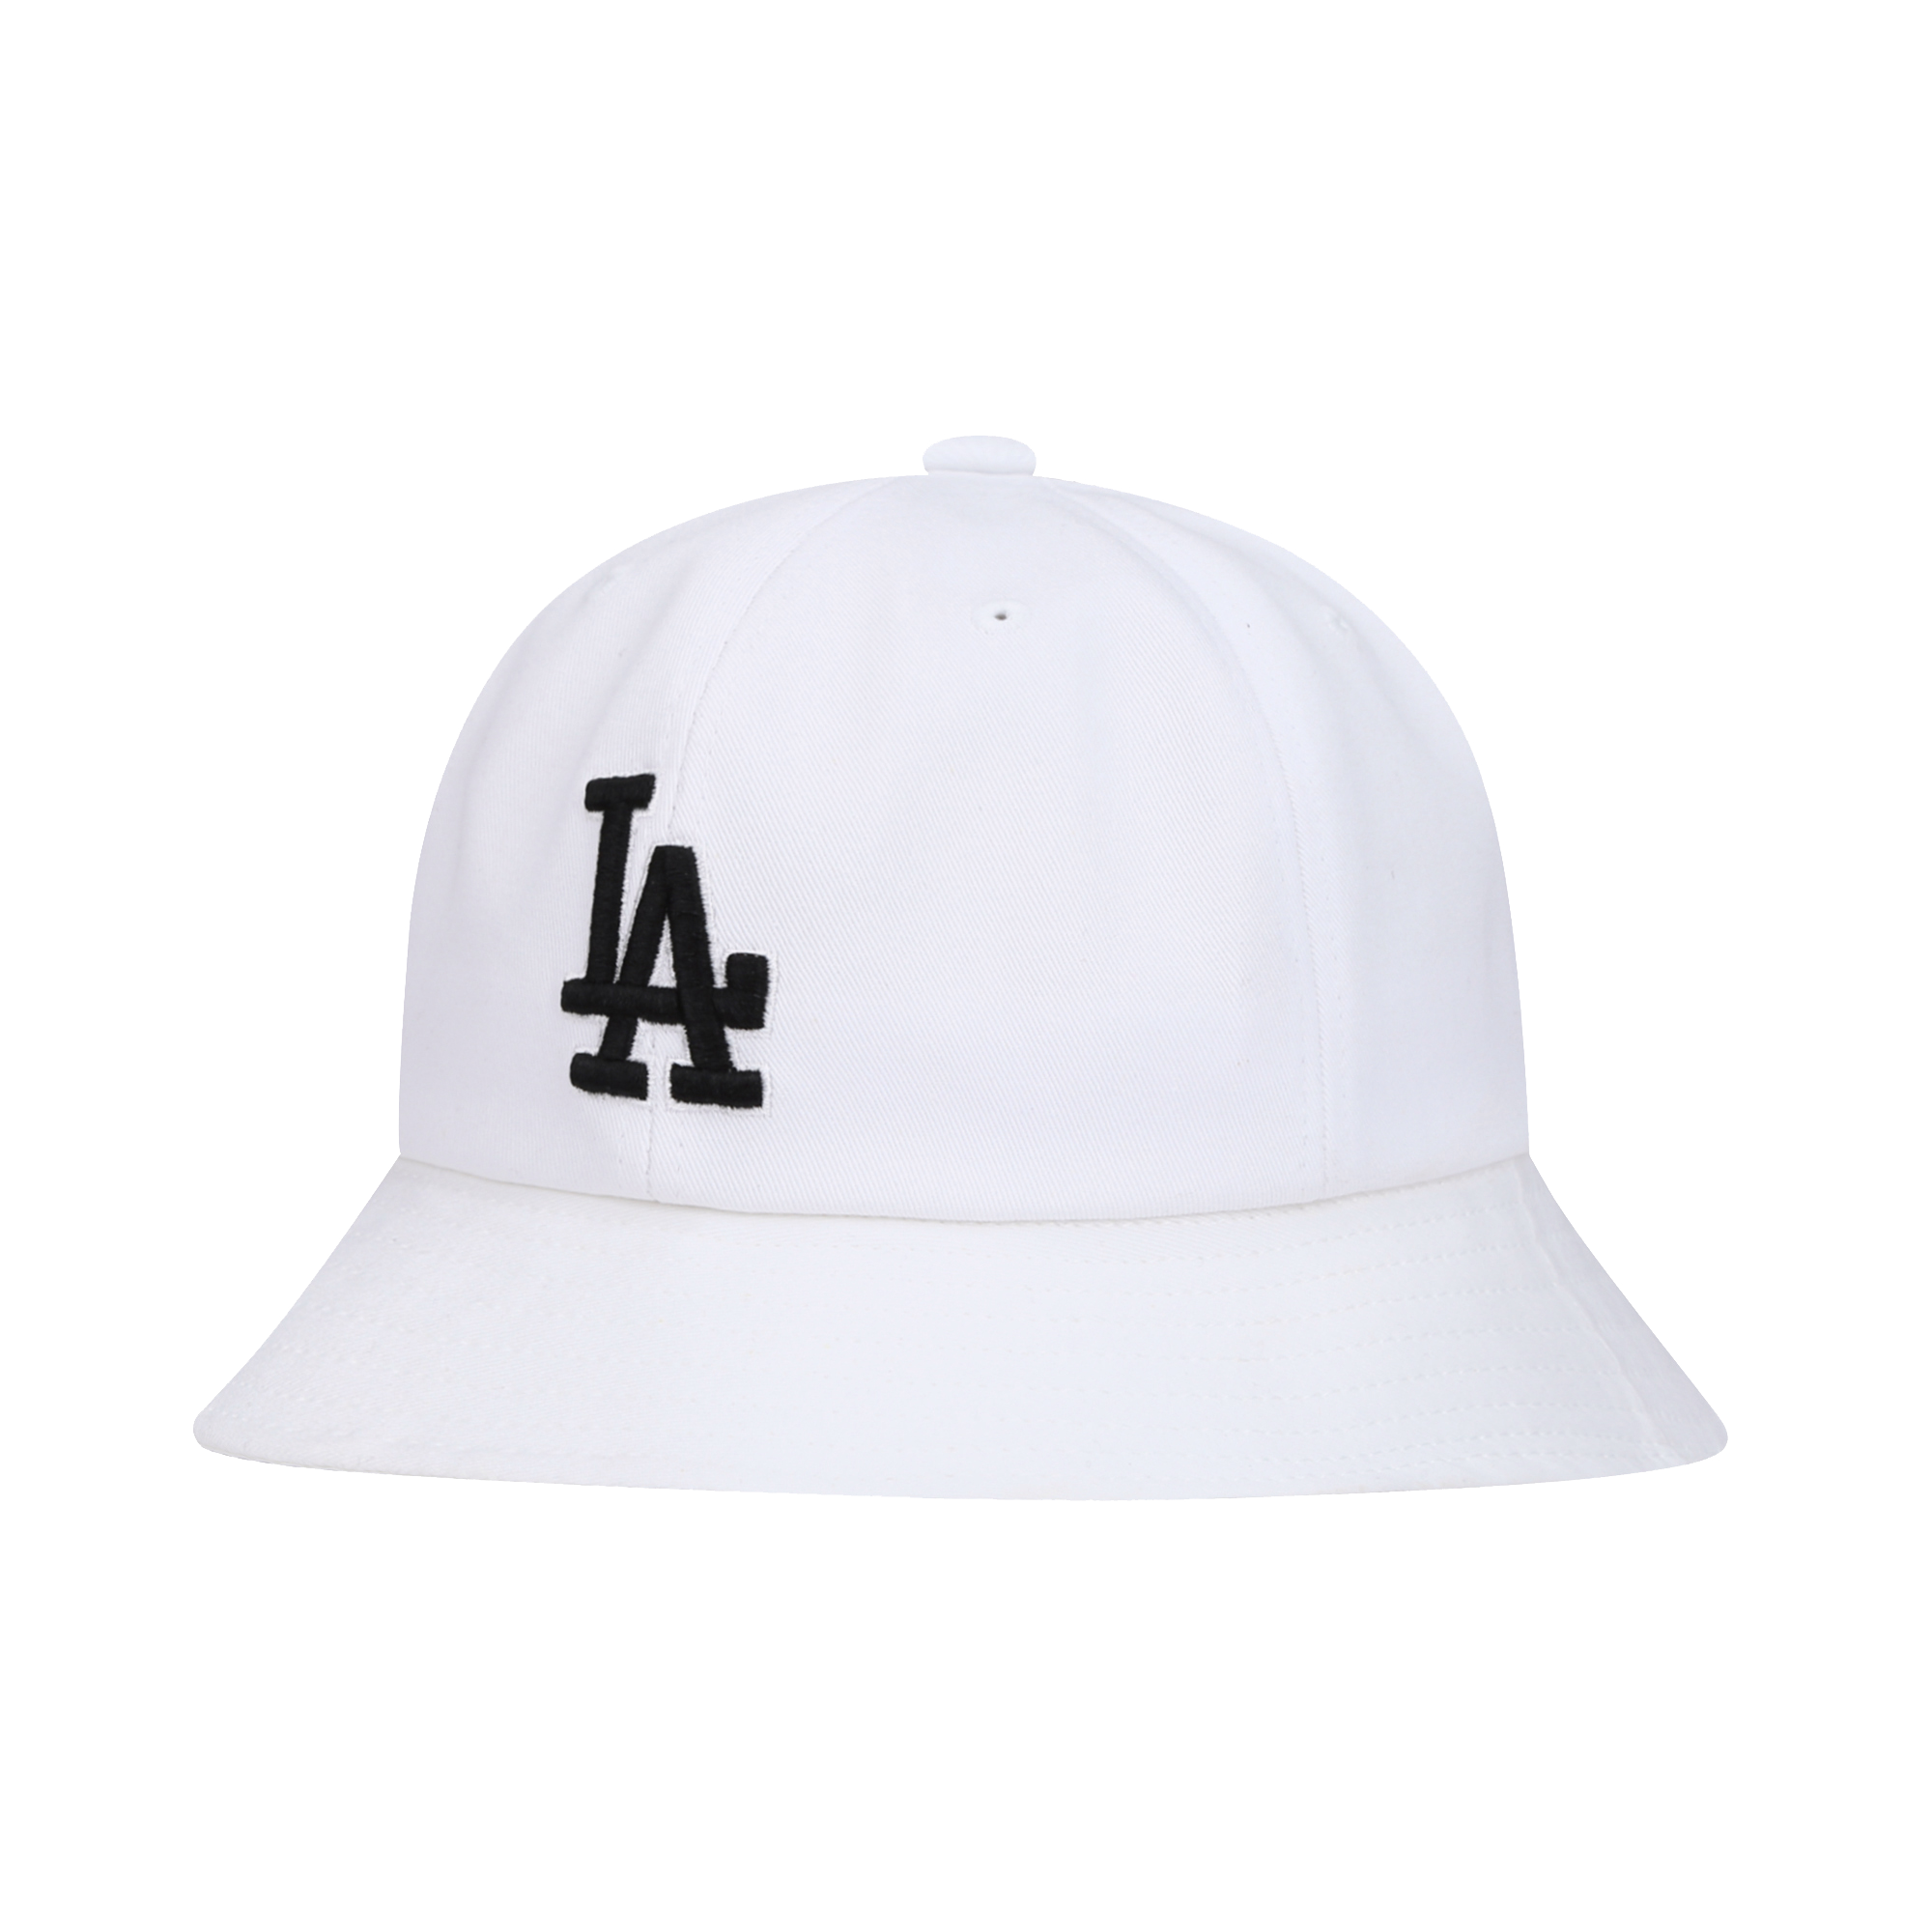 LA DODGERS BASIC COTTON DOME HAT